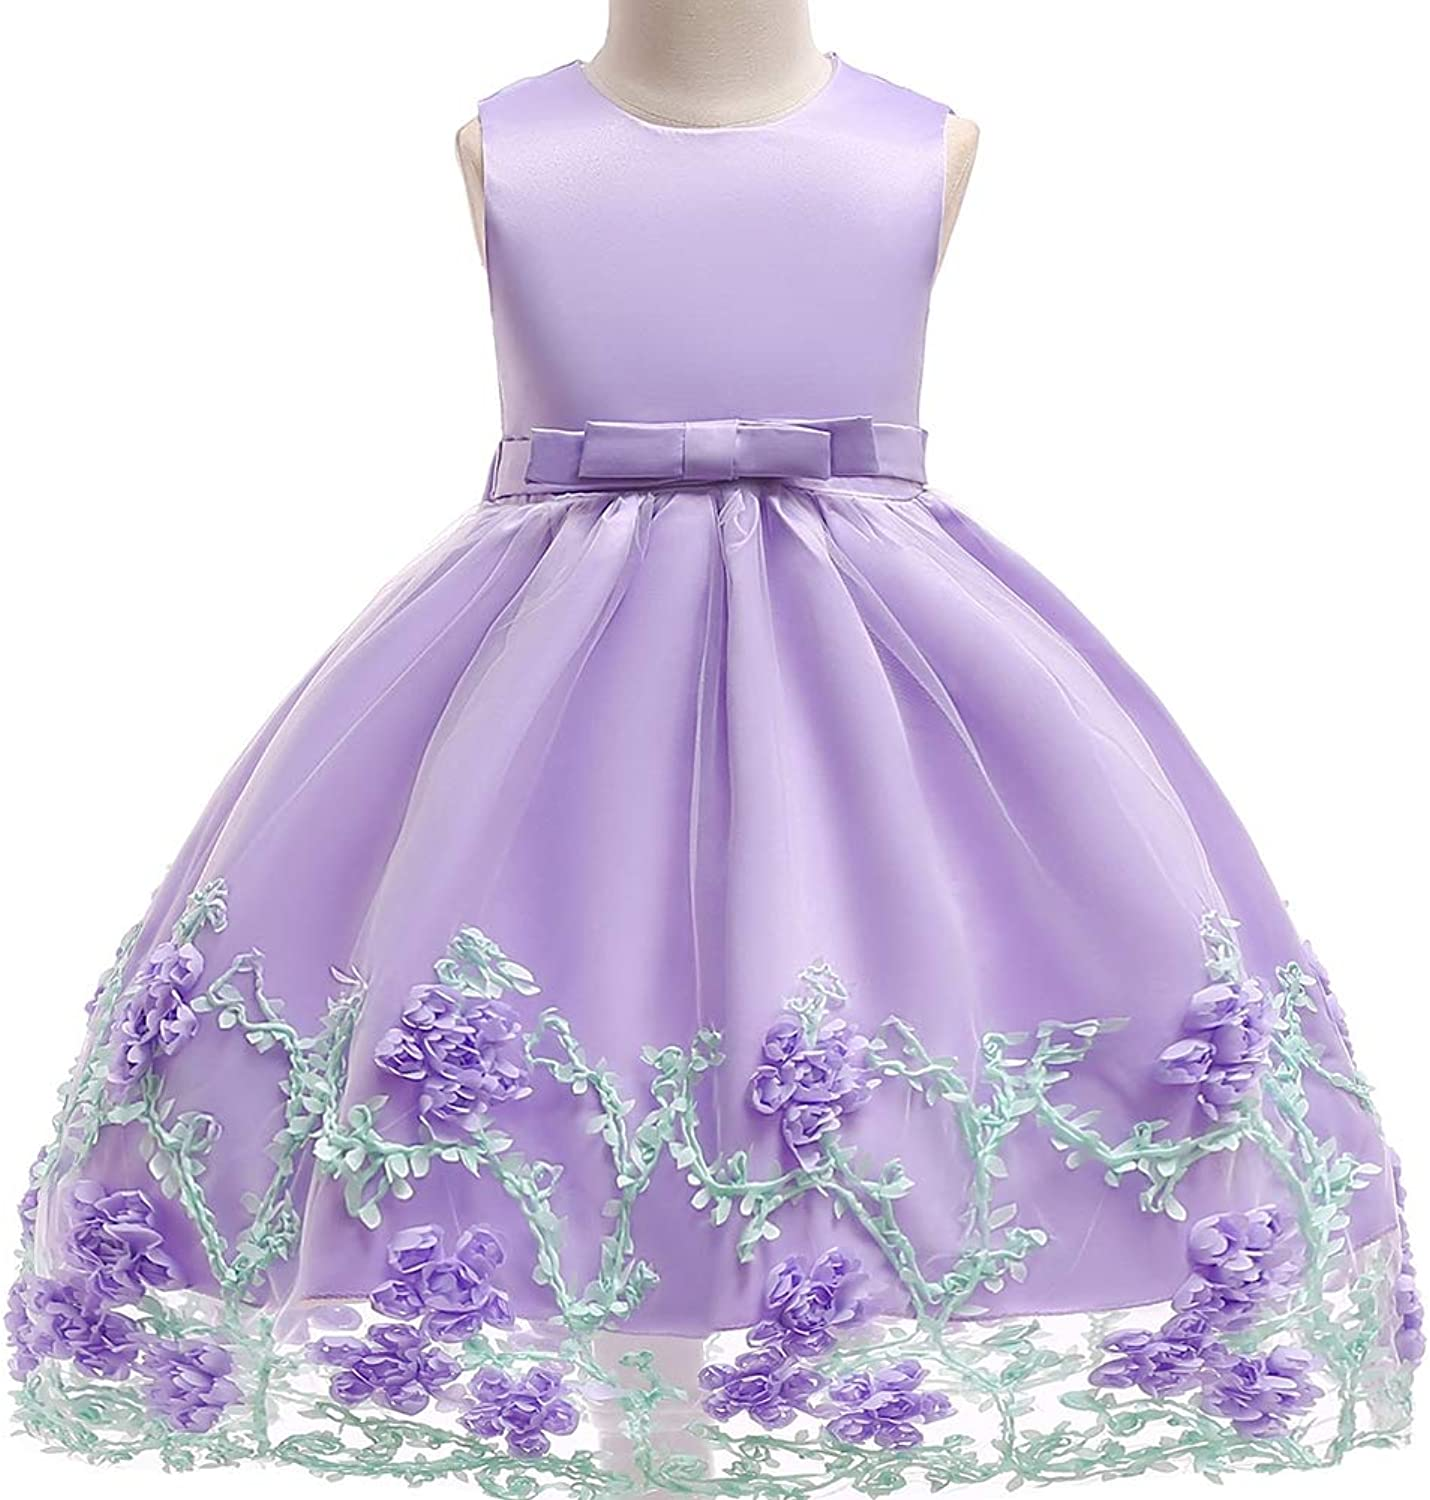 Girls Kids Dress Ball Wedding Princess Embroidered Tulle Bow Sleeveless Dress Bridesmaid Prom Pageant Dresses Birthday Christmas Party Dresses for Age 413Years Kids